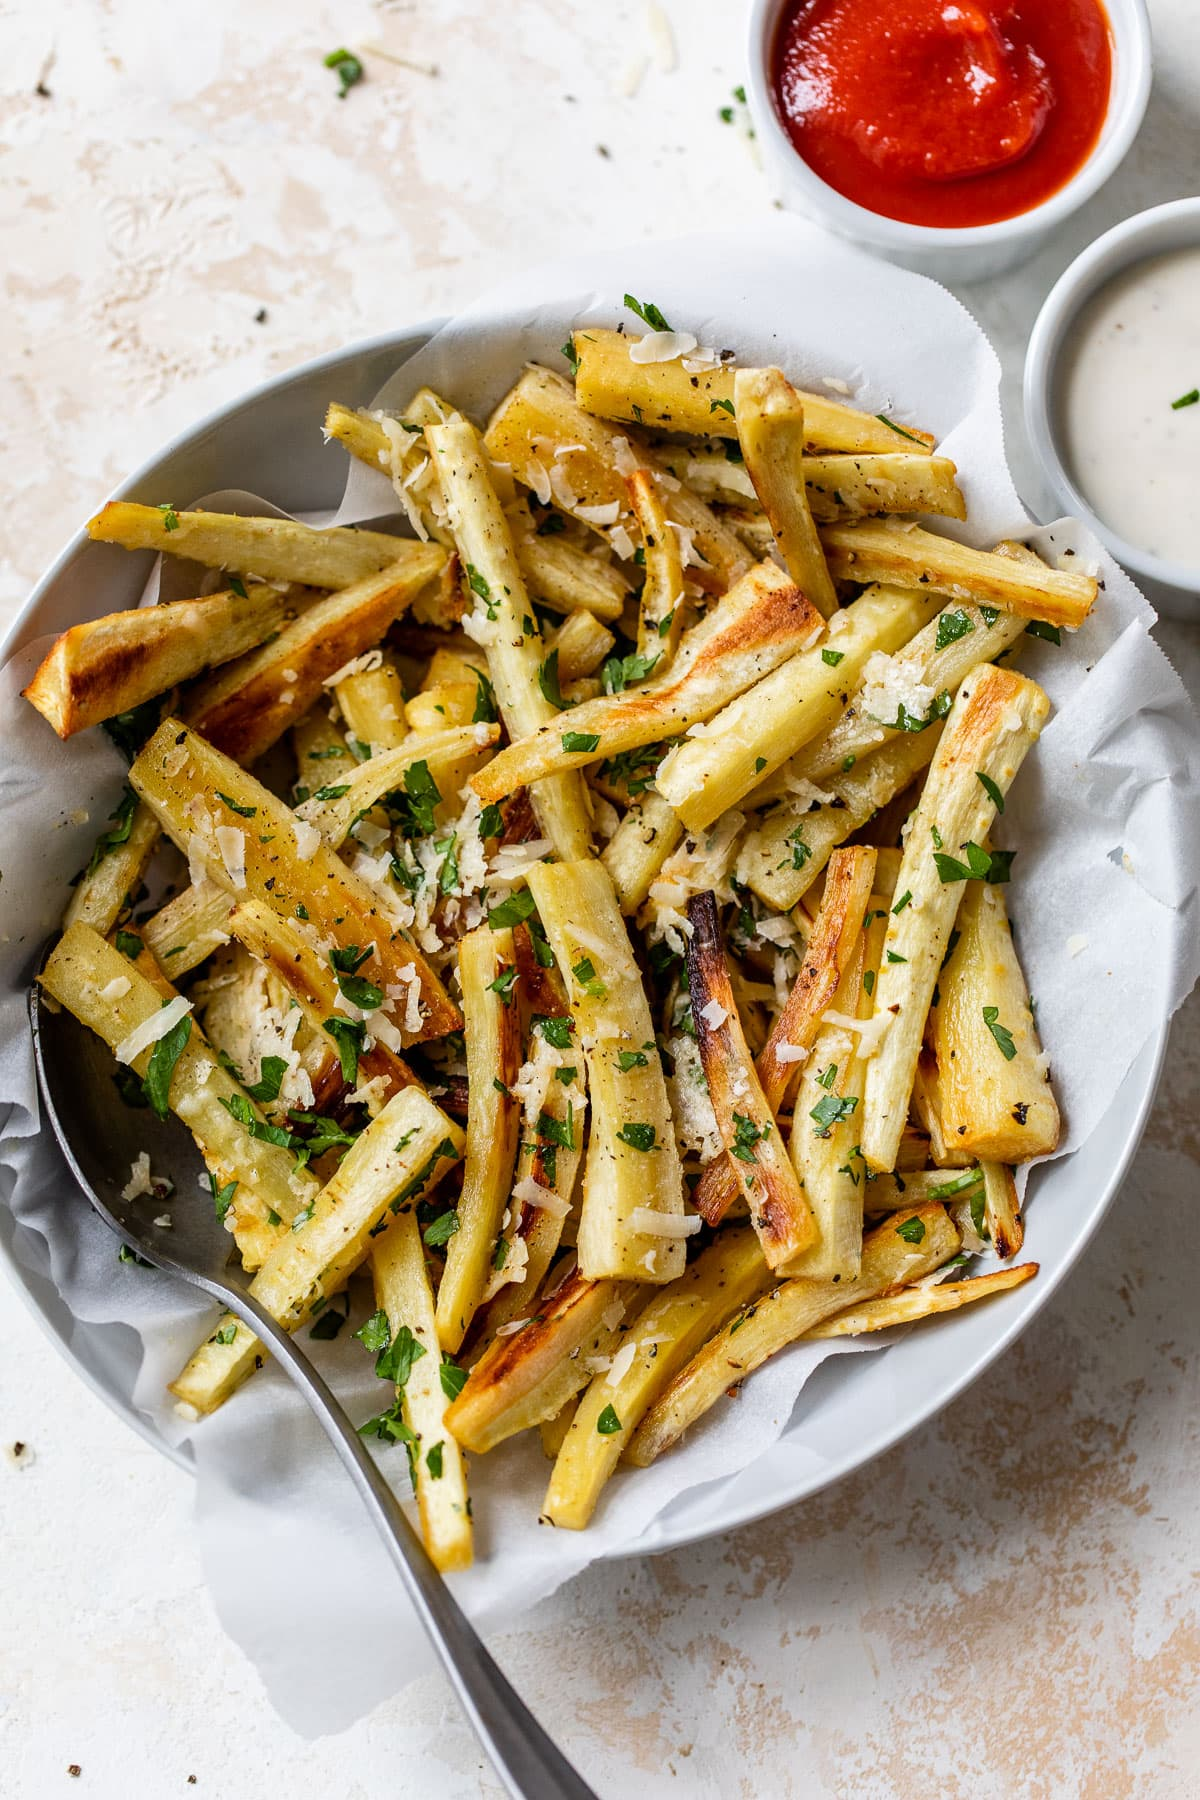 Baked Parsnip Fries with Parmesan and Parsley